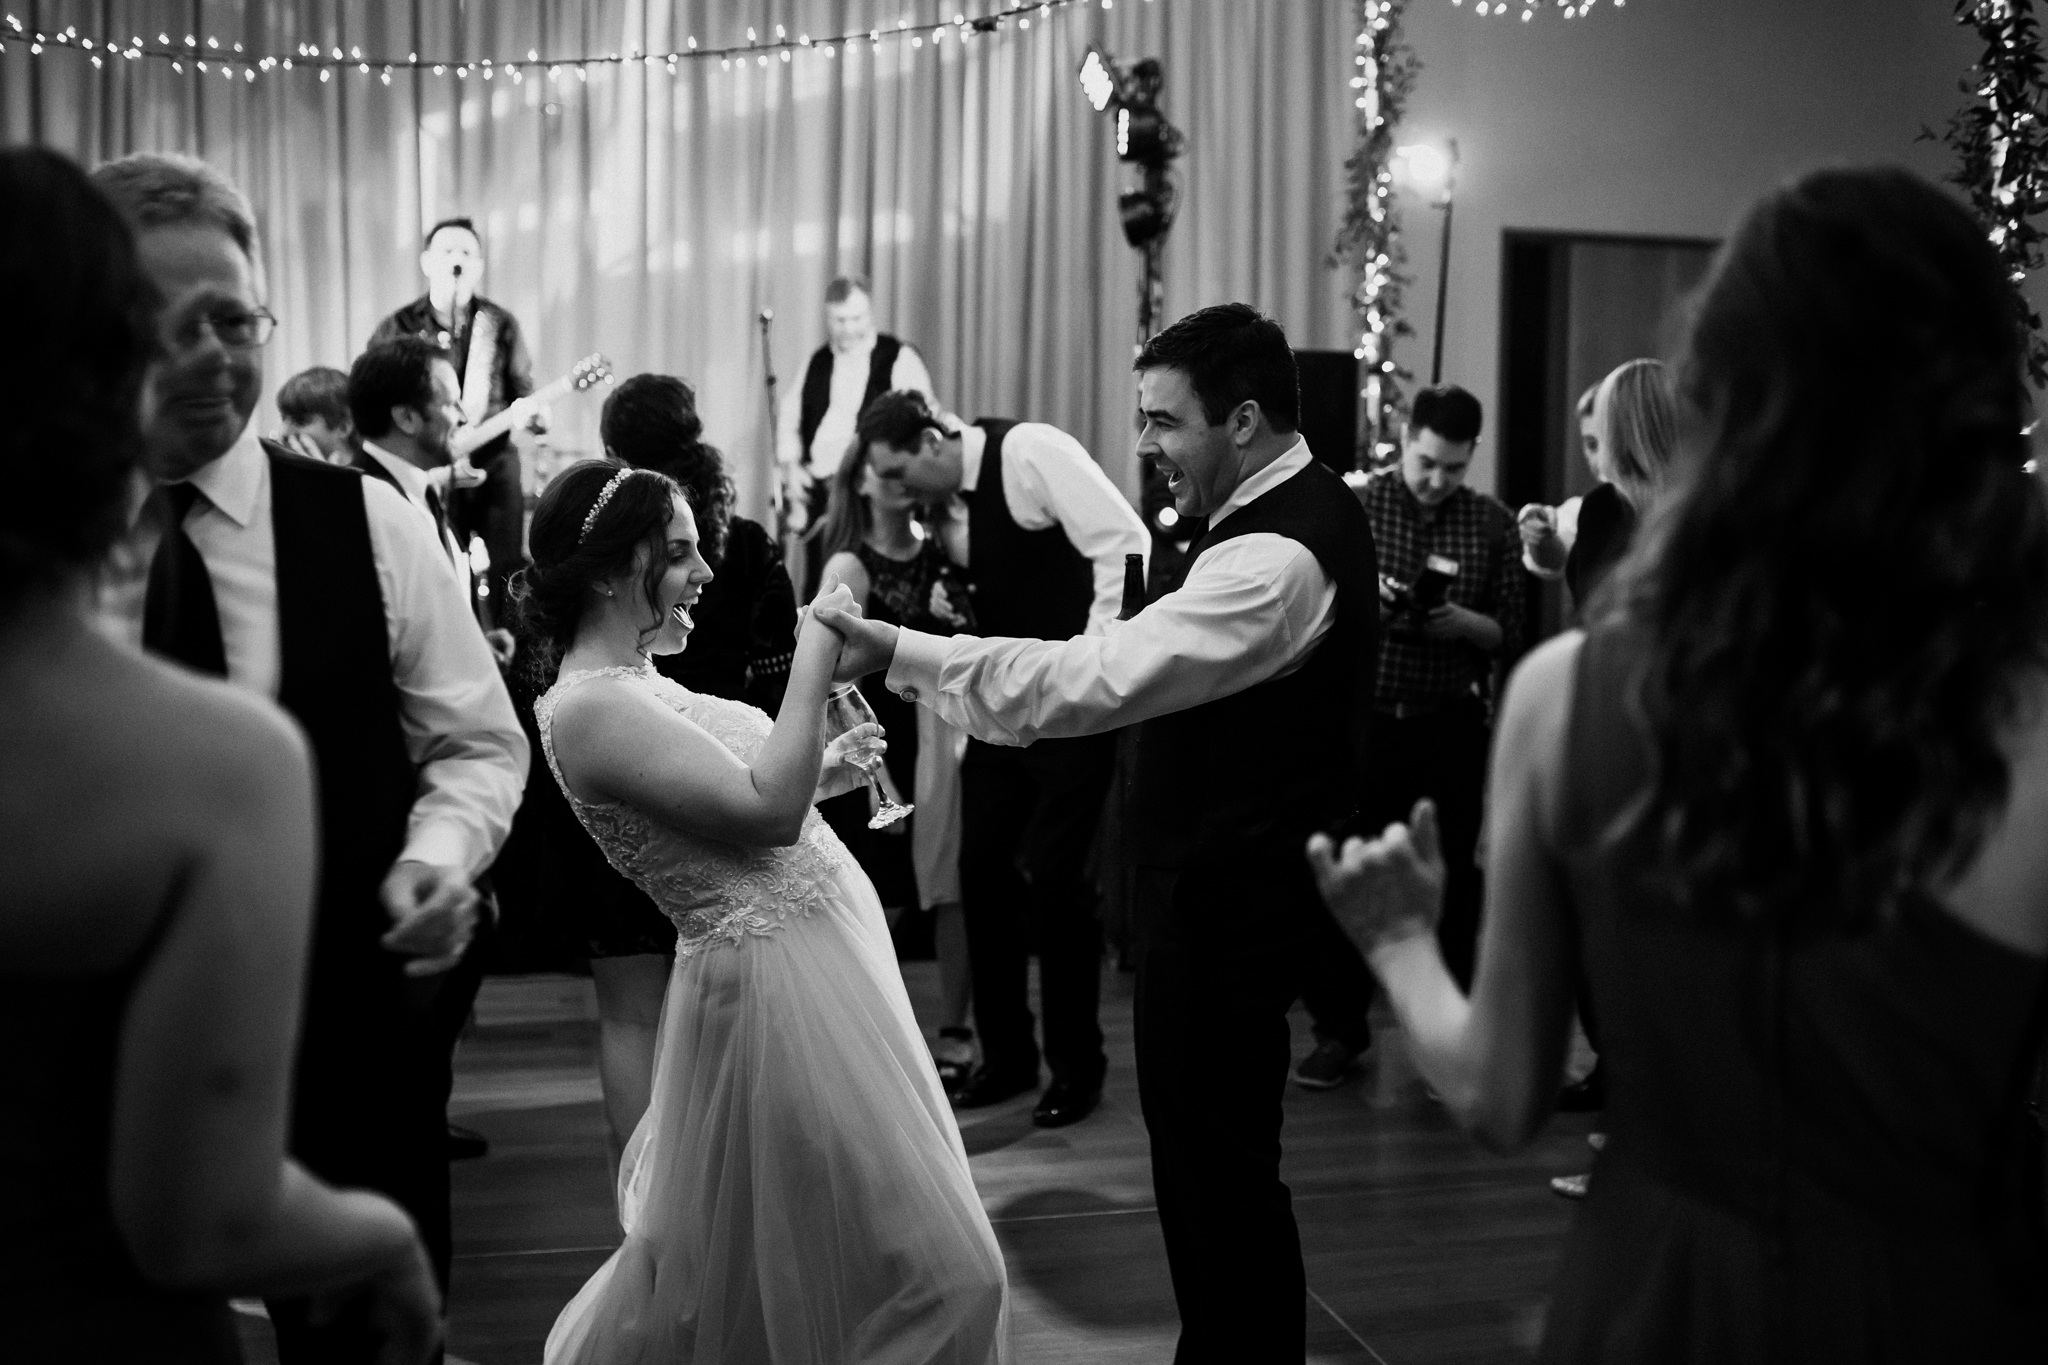 memphis-wedding-photographers-the-warmth-around-you-cassie-cook-photography (6 of 8).jpg